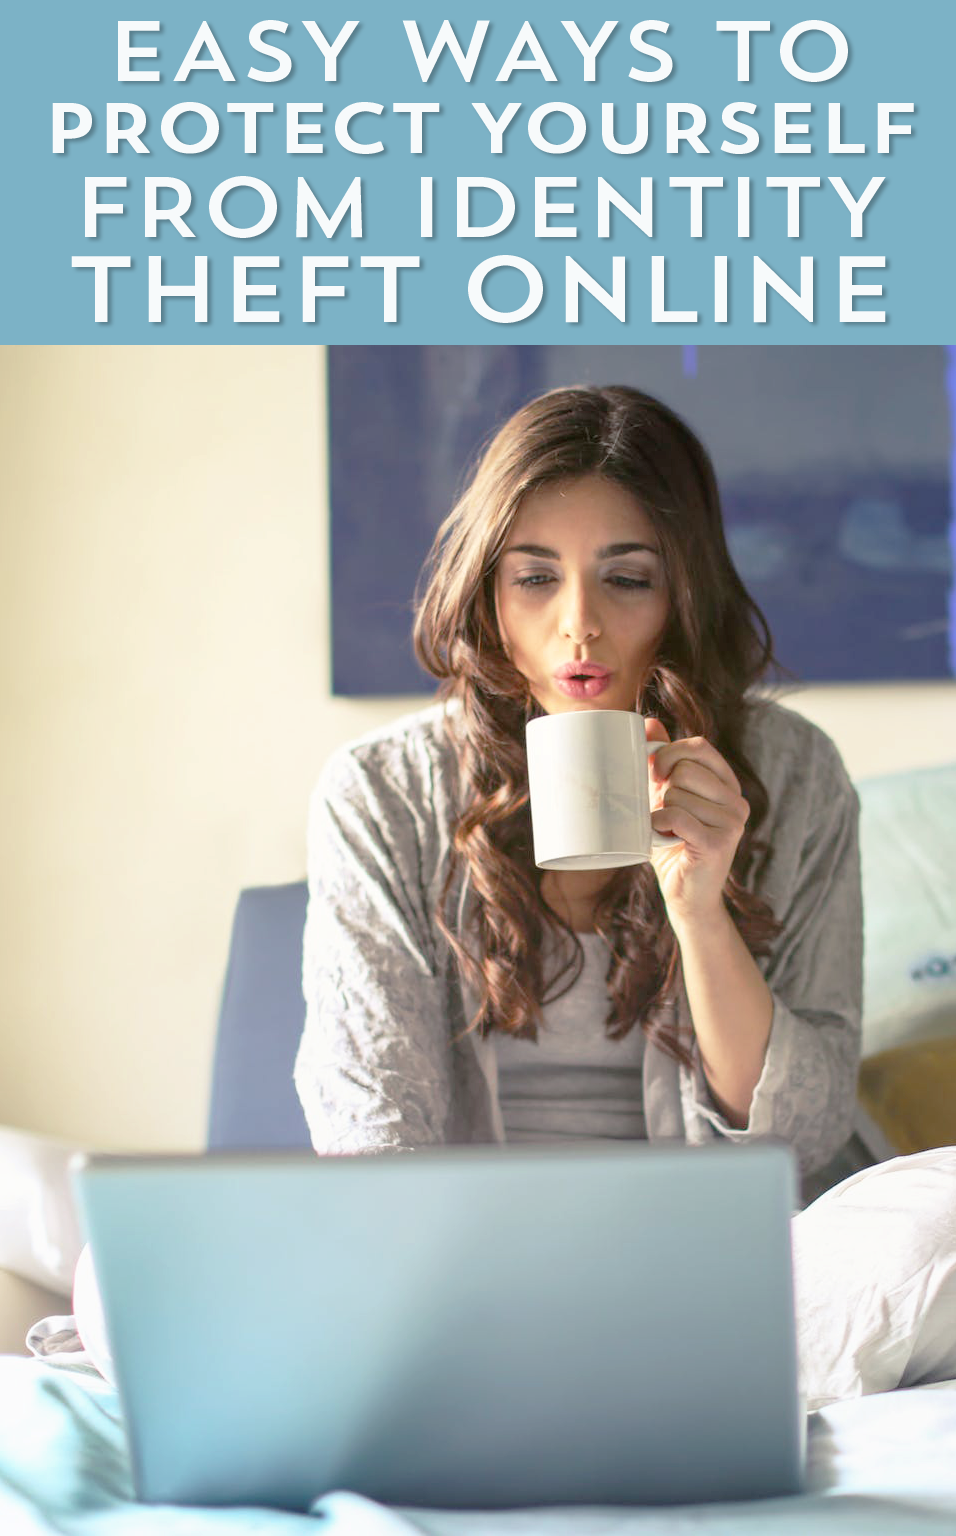 With data breaches, spam scams and phishing attempts, protecting yourself from identity theft online can feel overwhelming. Here are some easy tips to help.